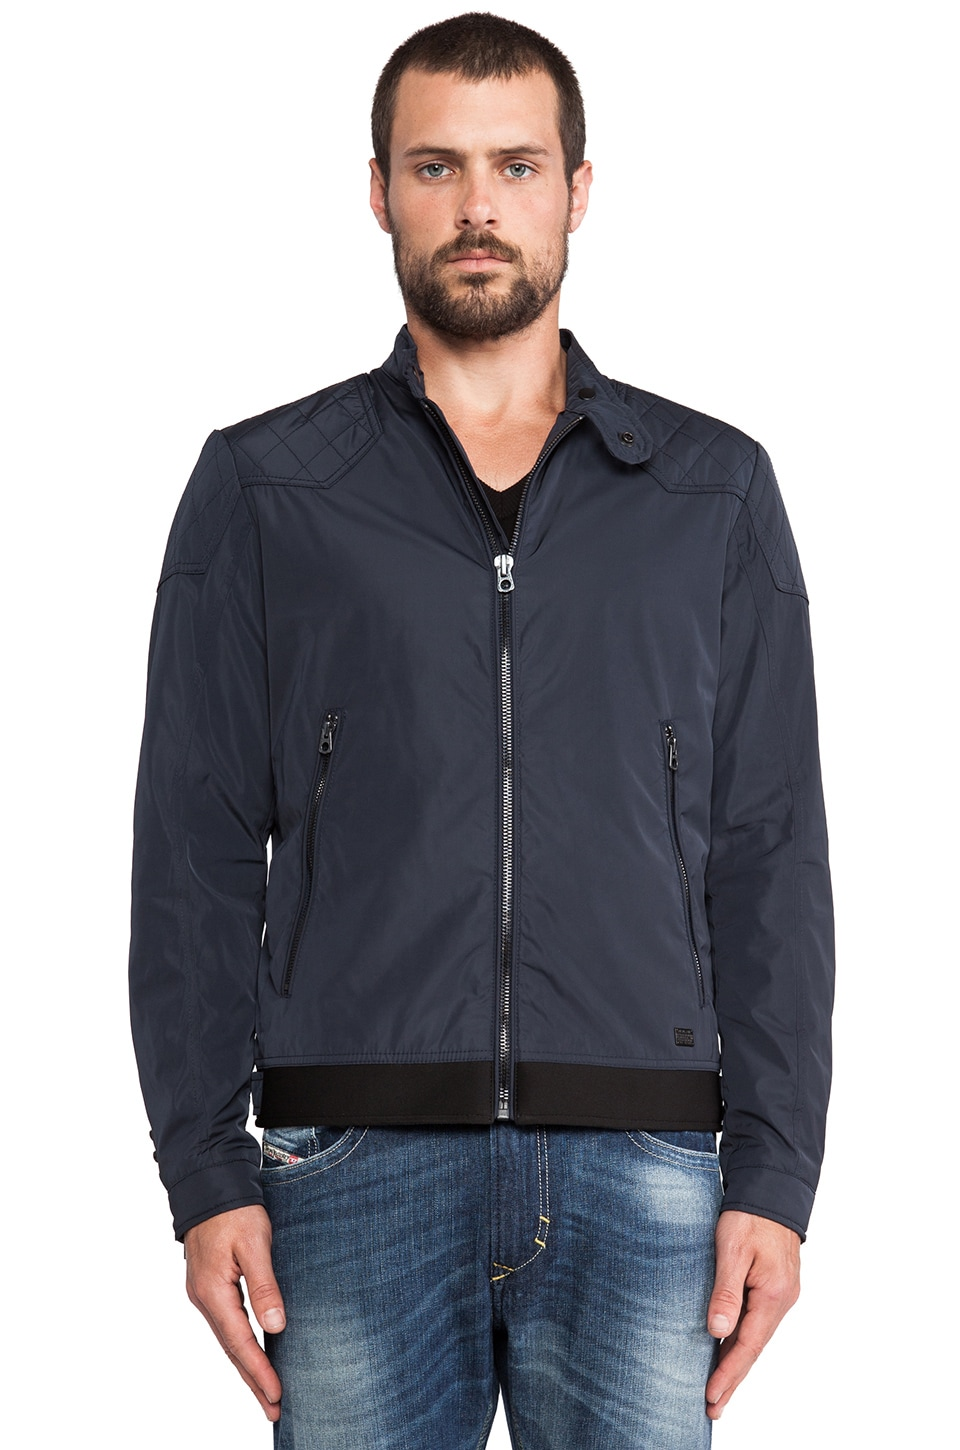 Diesel Hollis Jacket in Navy